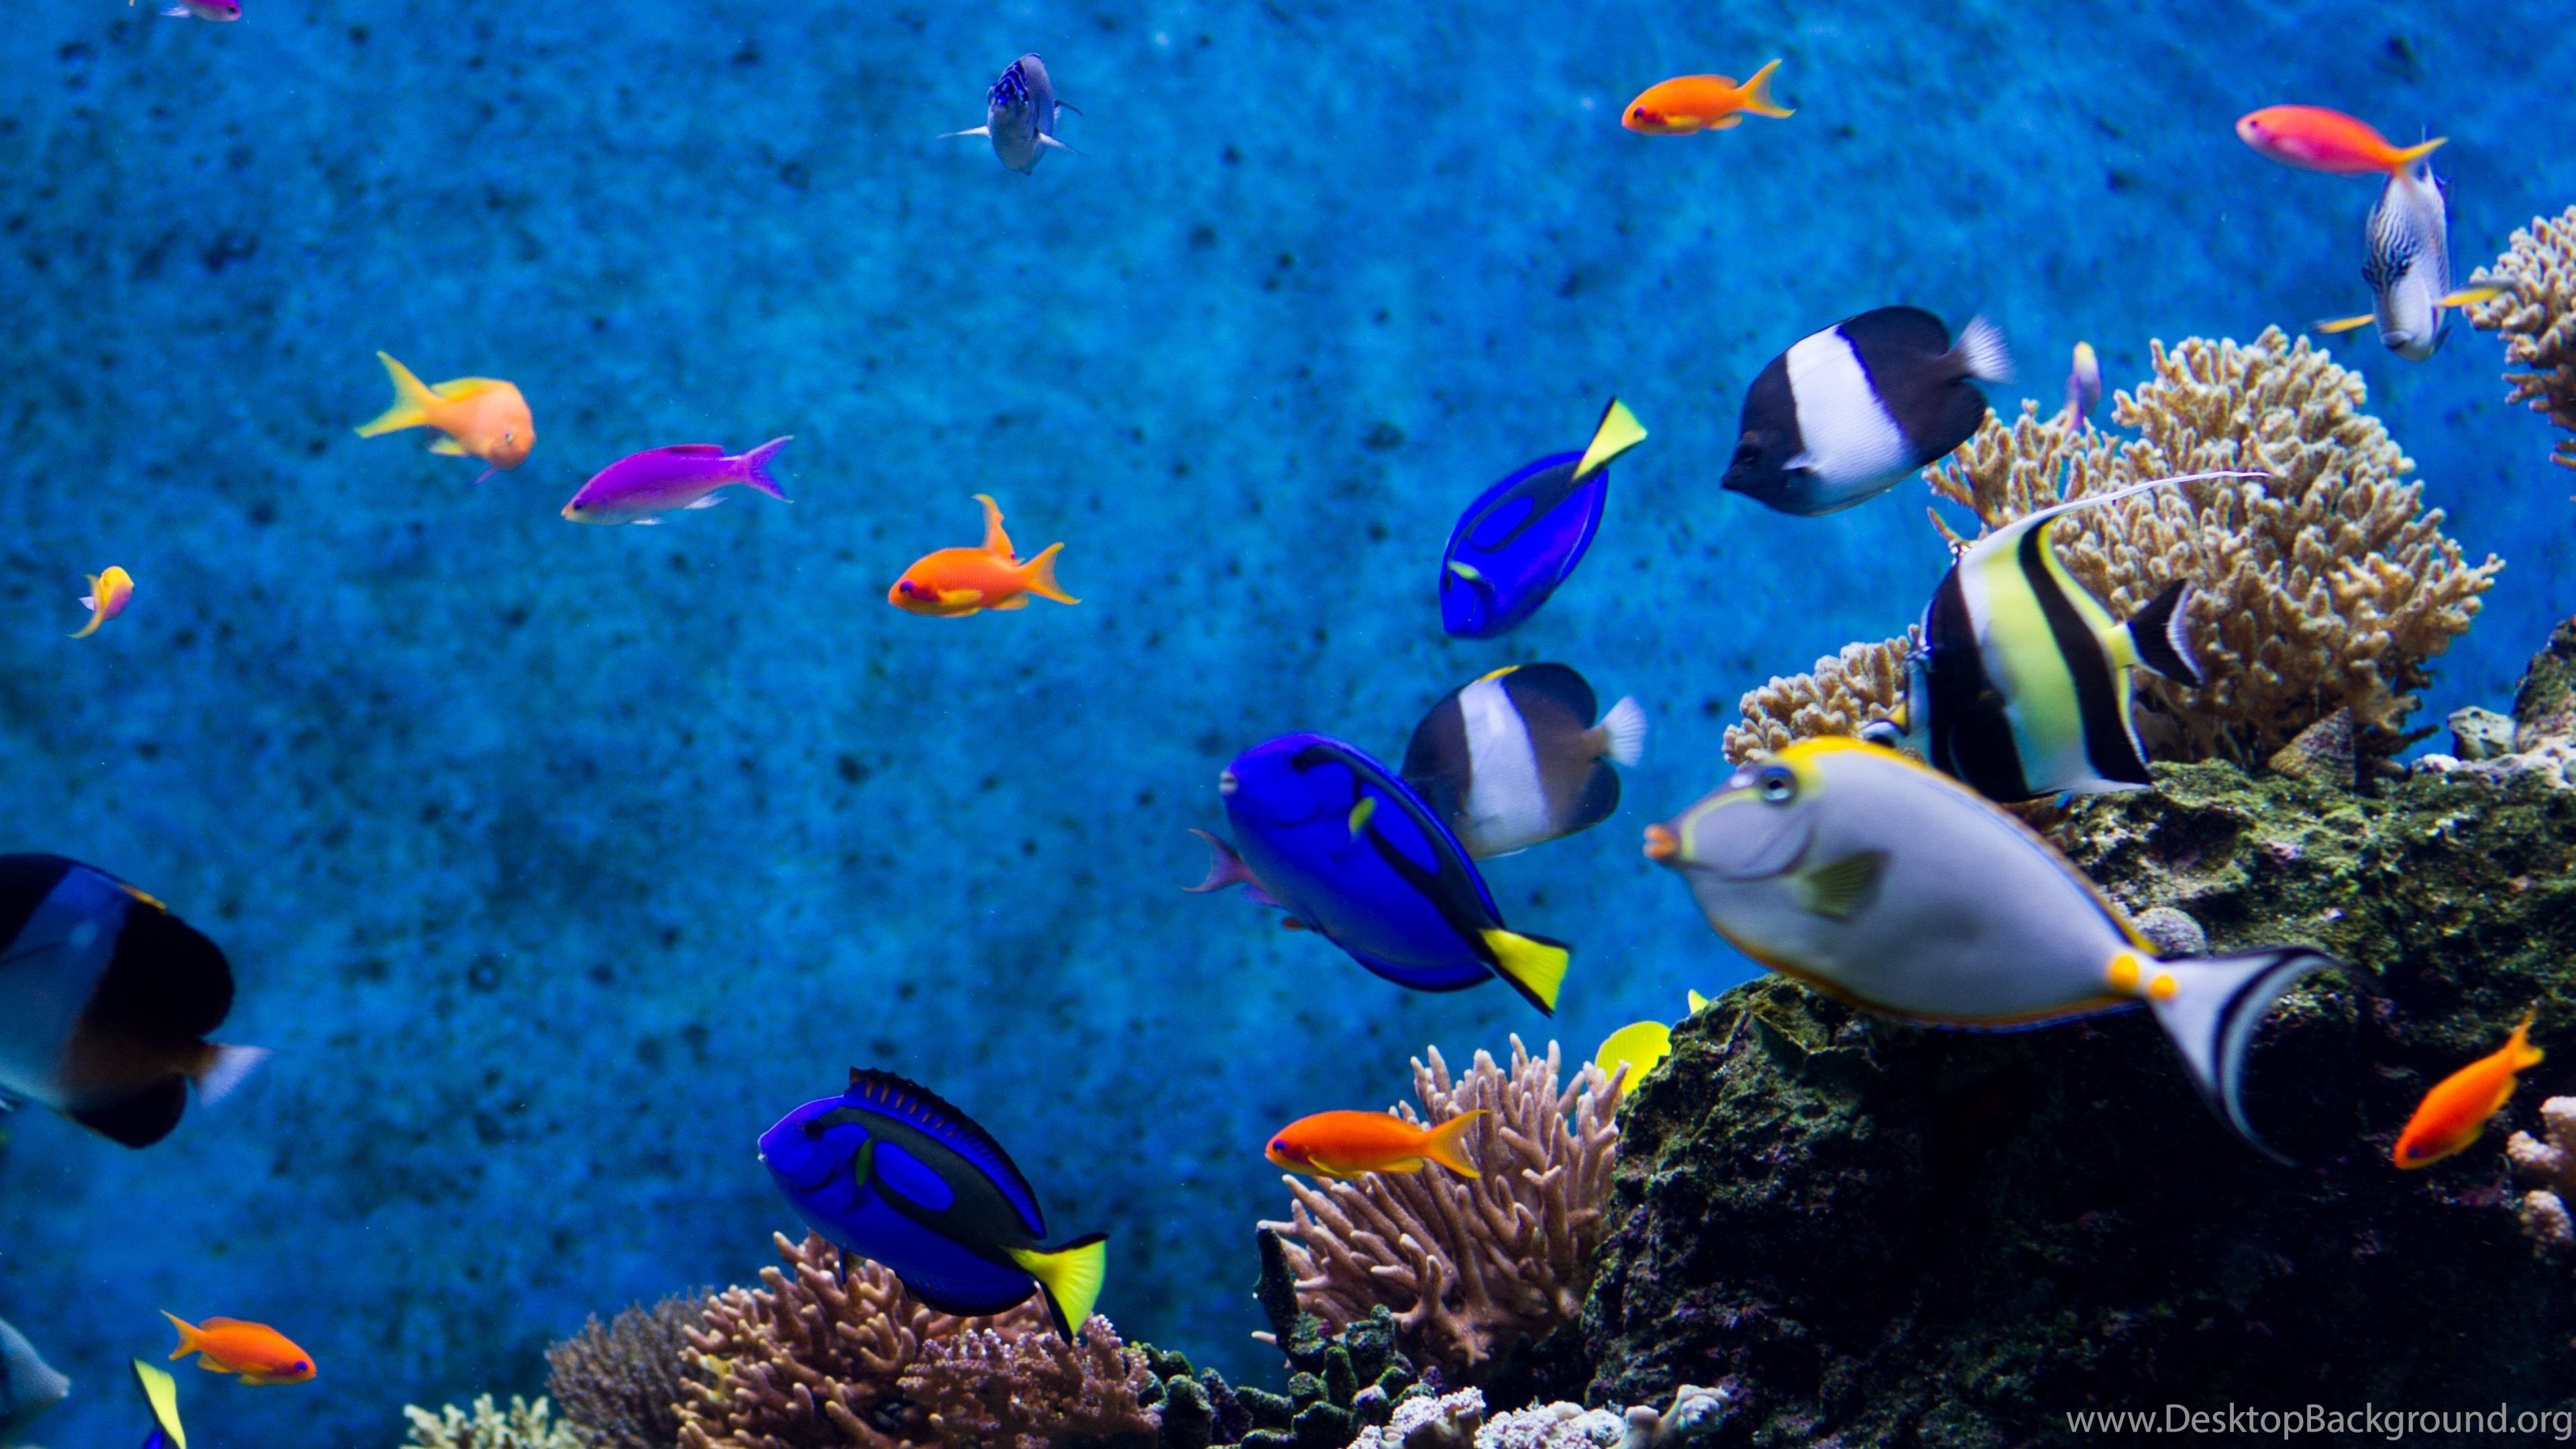 3840x2160 Aquarium Fishes Wallpapers :: HD Wallpapers Desktop Background